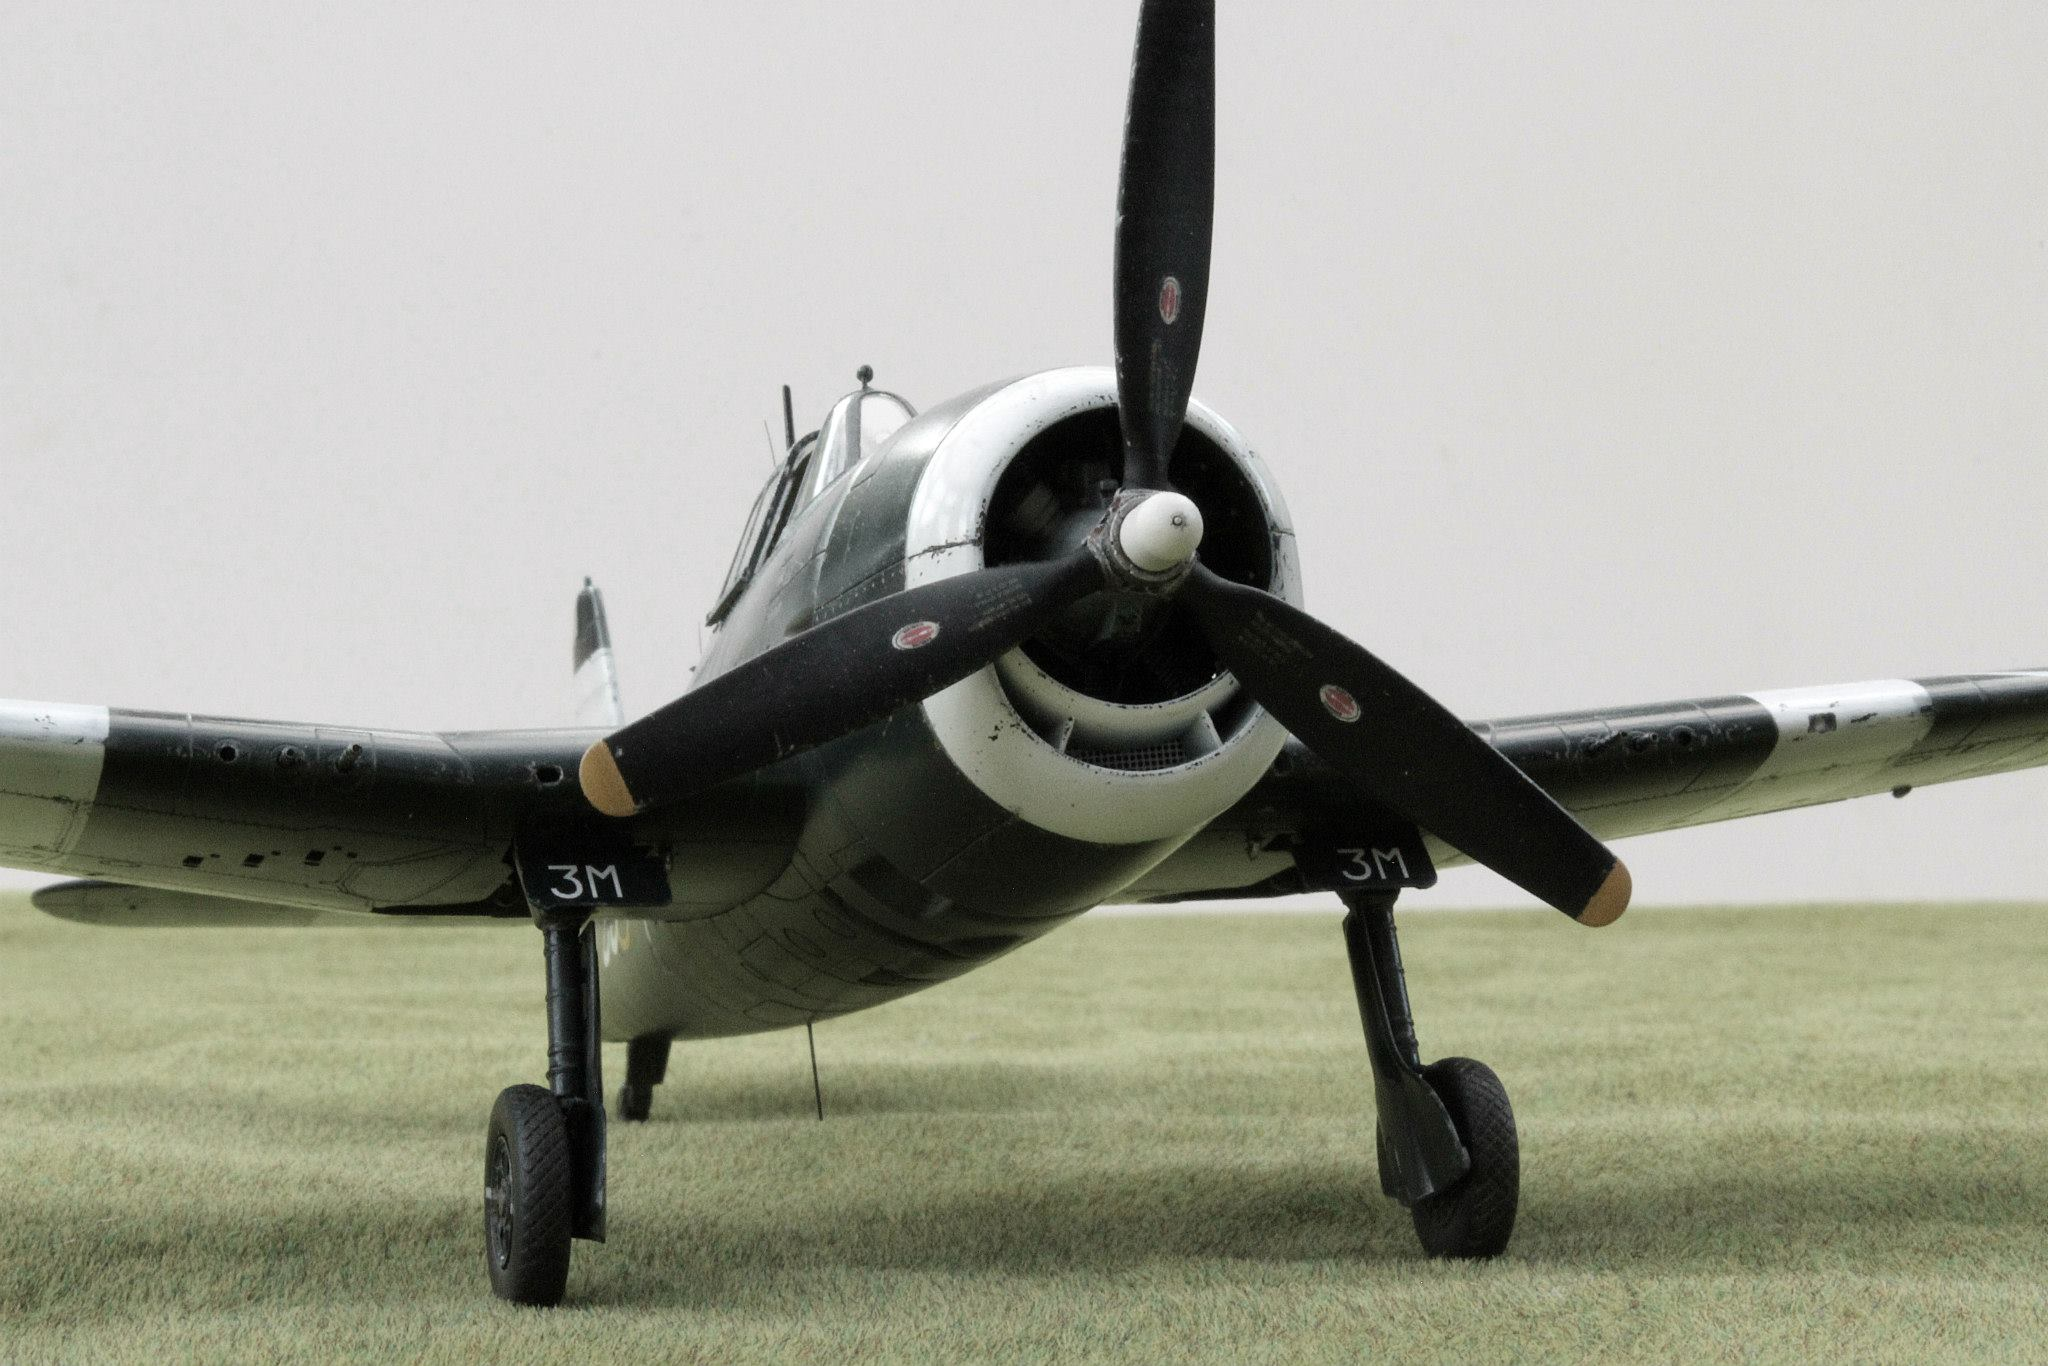 Grumman Hellcat Mk II JZ931 'C3-M' of 800 squadron, SEAC, at Trincomalee in October 1945. Kit is in 1/48th scale by Eduard.